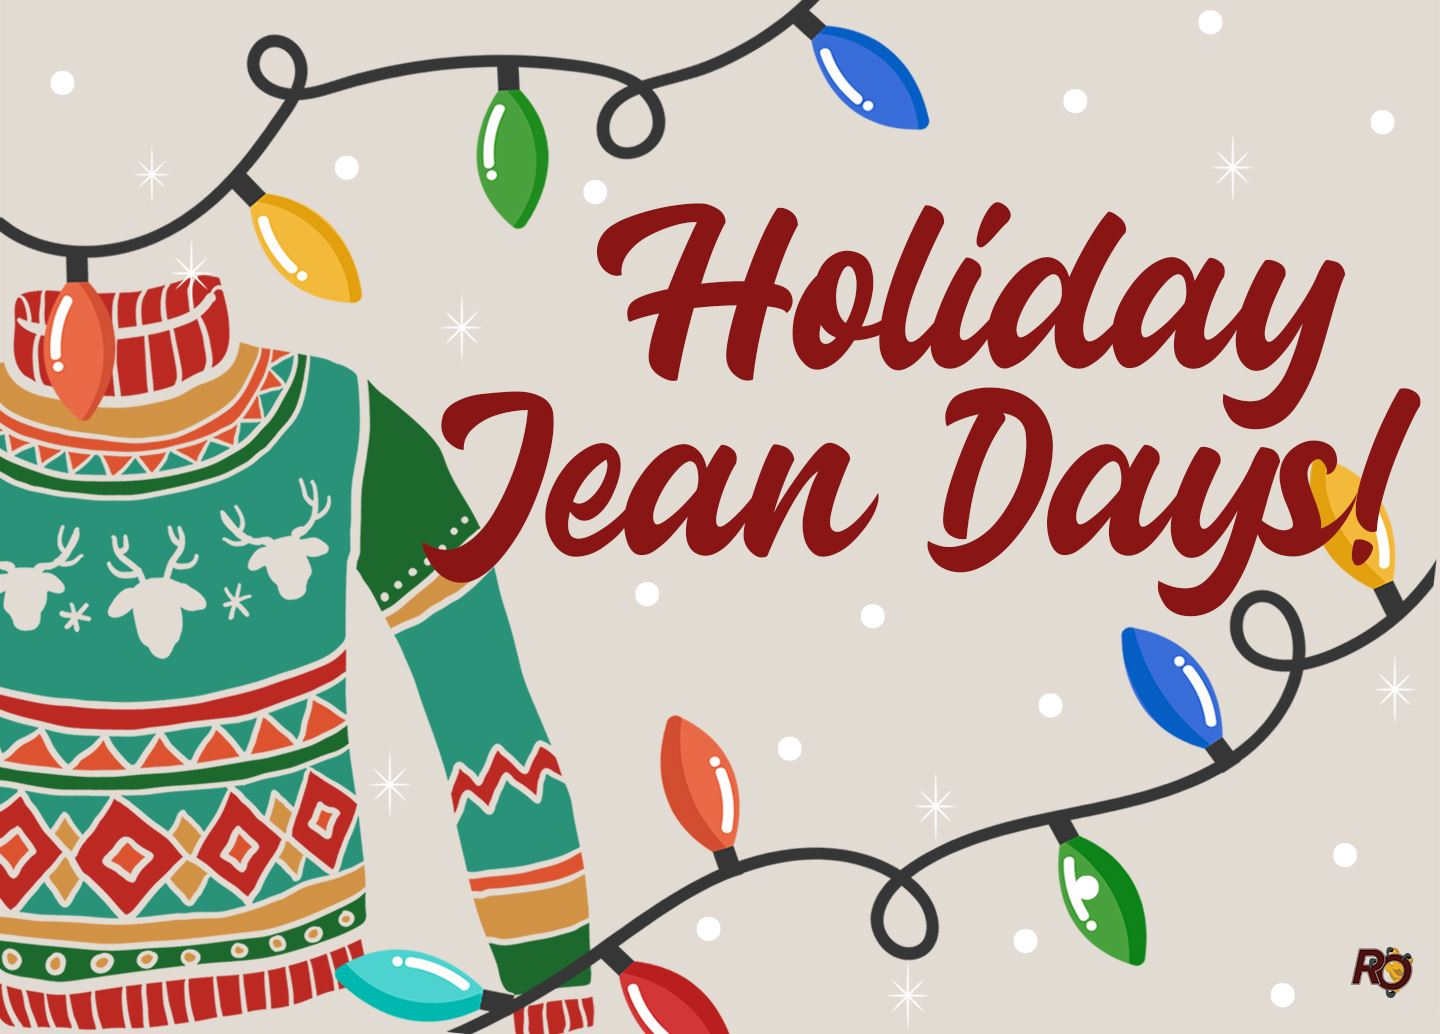 Holiday Jean Days from Dec. 13 - 20